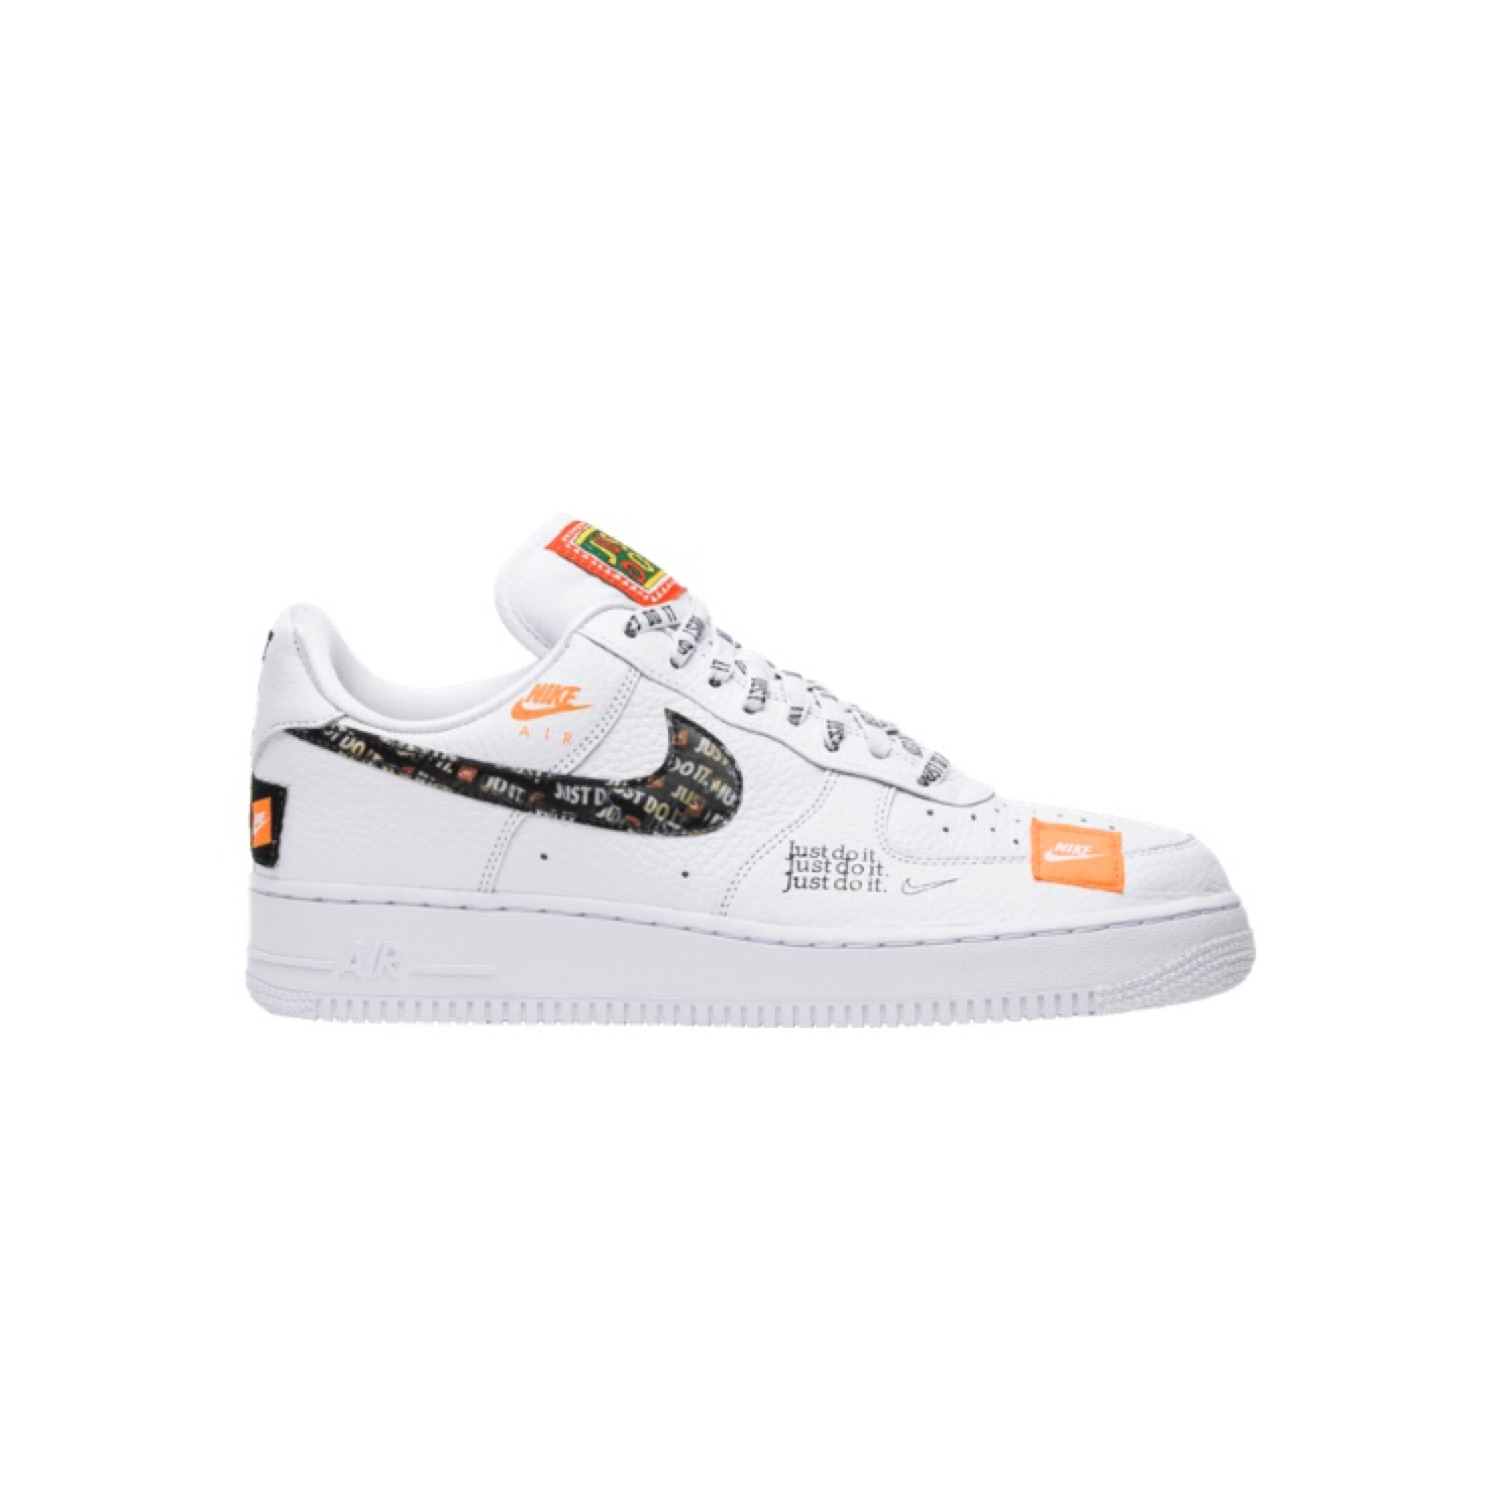 the latest fa3ba d47dc Air Force 1 Low '07 Prm Gs 'Just Do It'